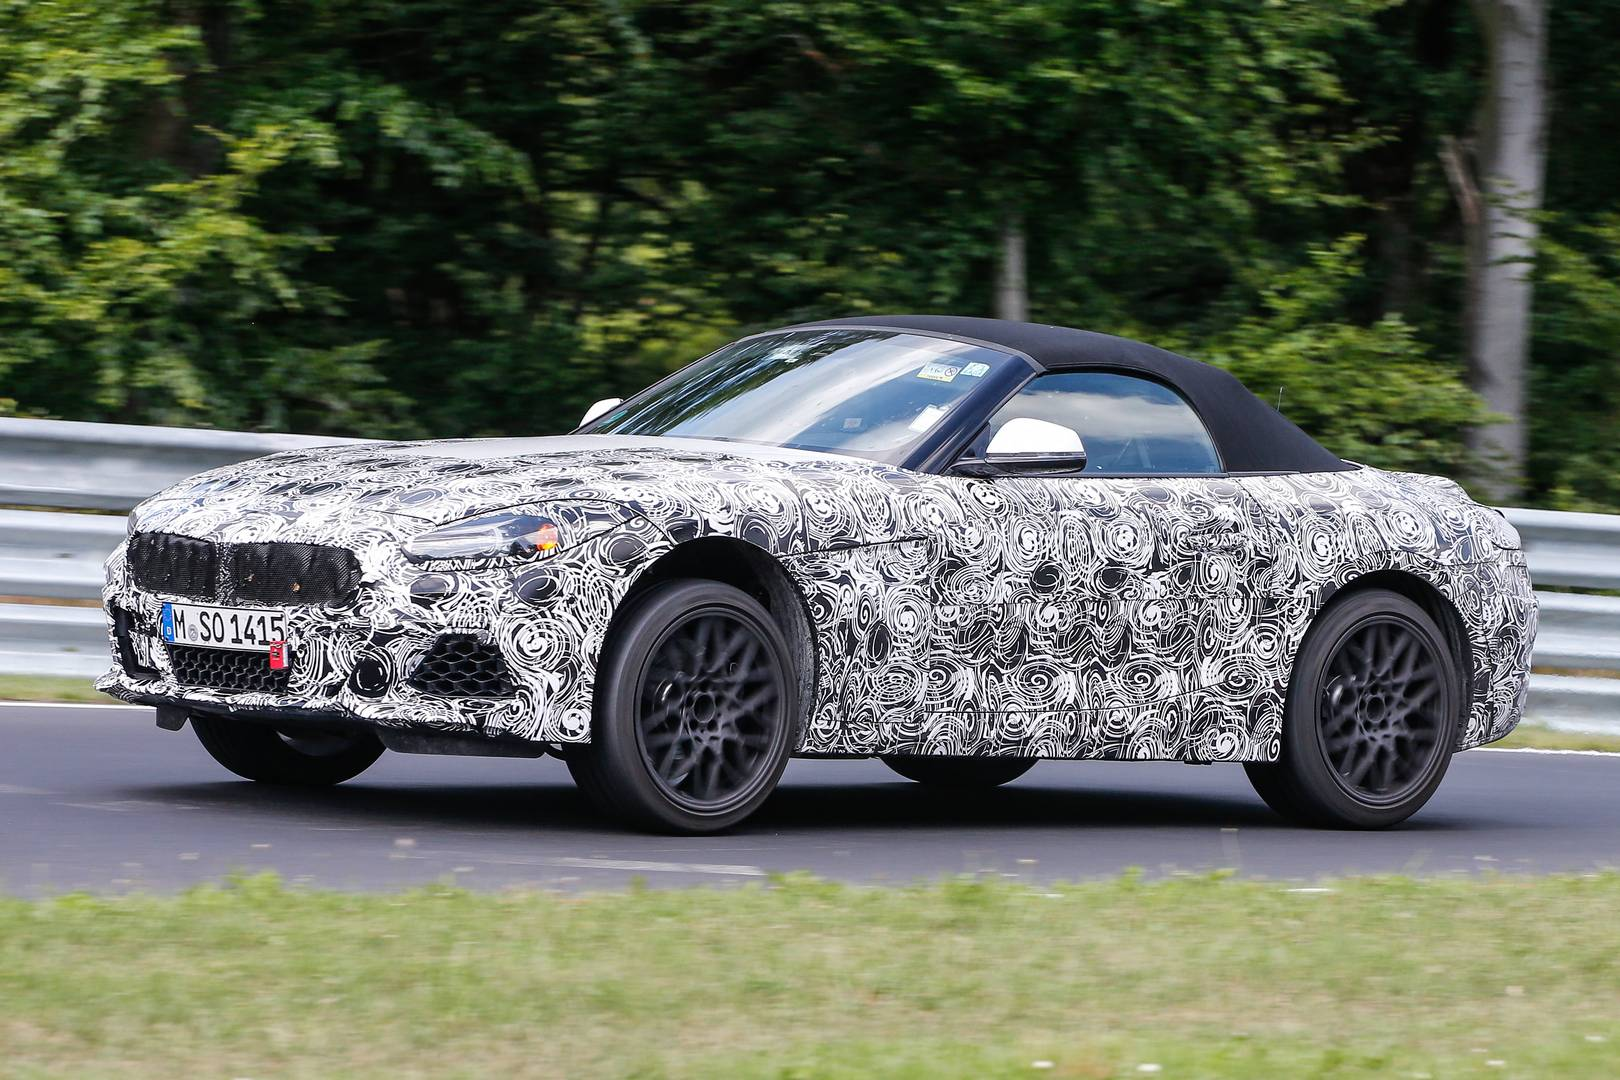 2018 Bmw Z5 M40i First Spy Shots At The Nurburgring Gtspirit